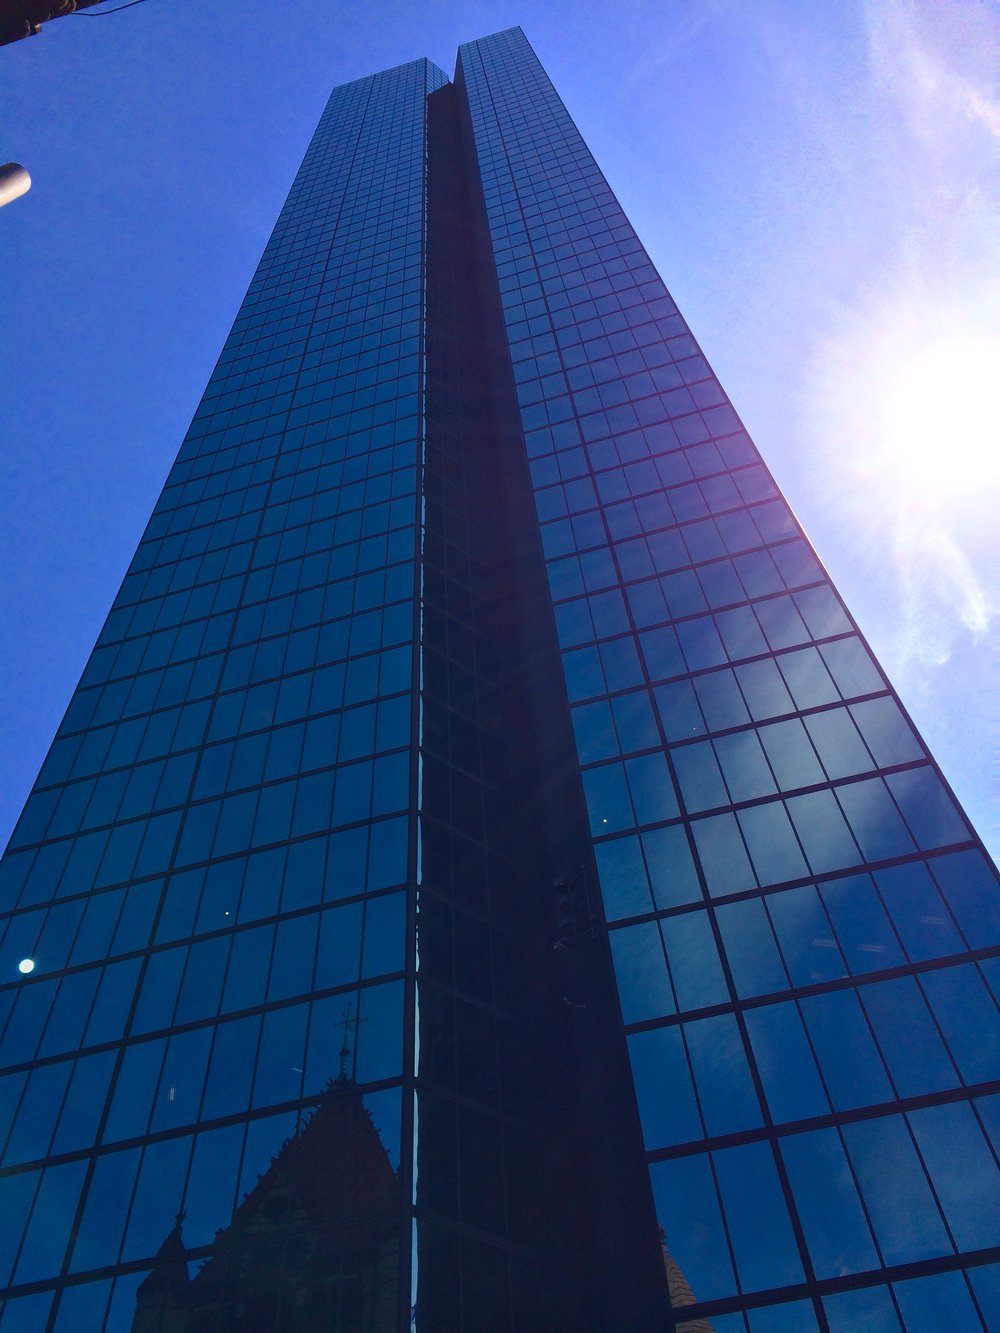 Formerly known as the John Hancock Tower, 200 Clarendon Street is the tallest building in Copley Square.  Credit: Max Winter